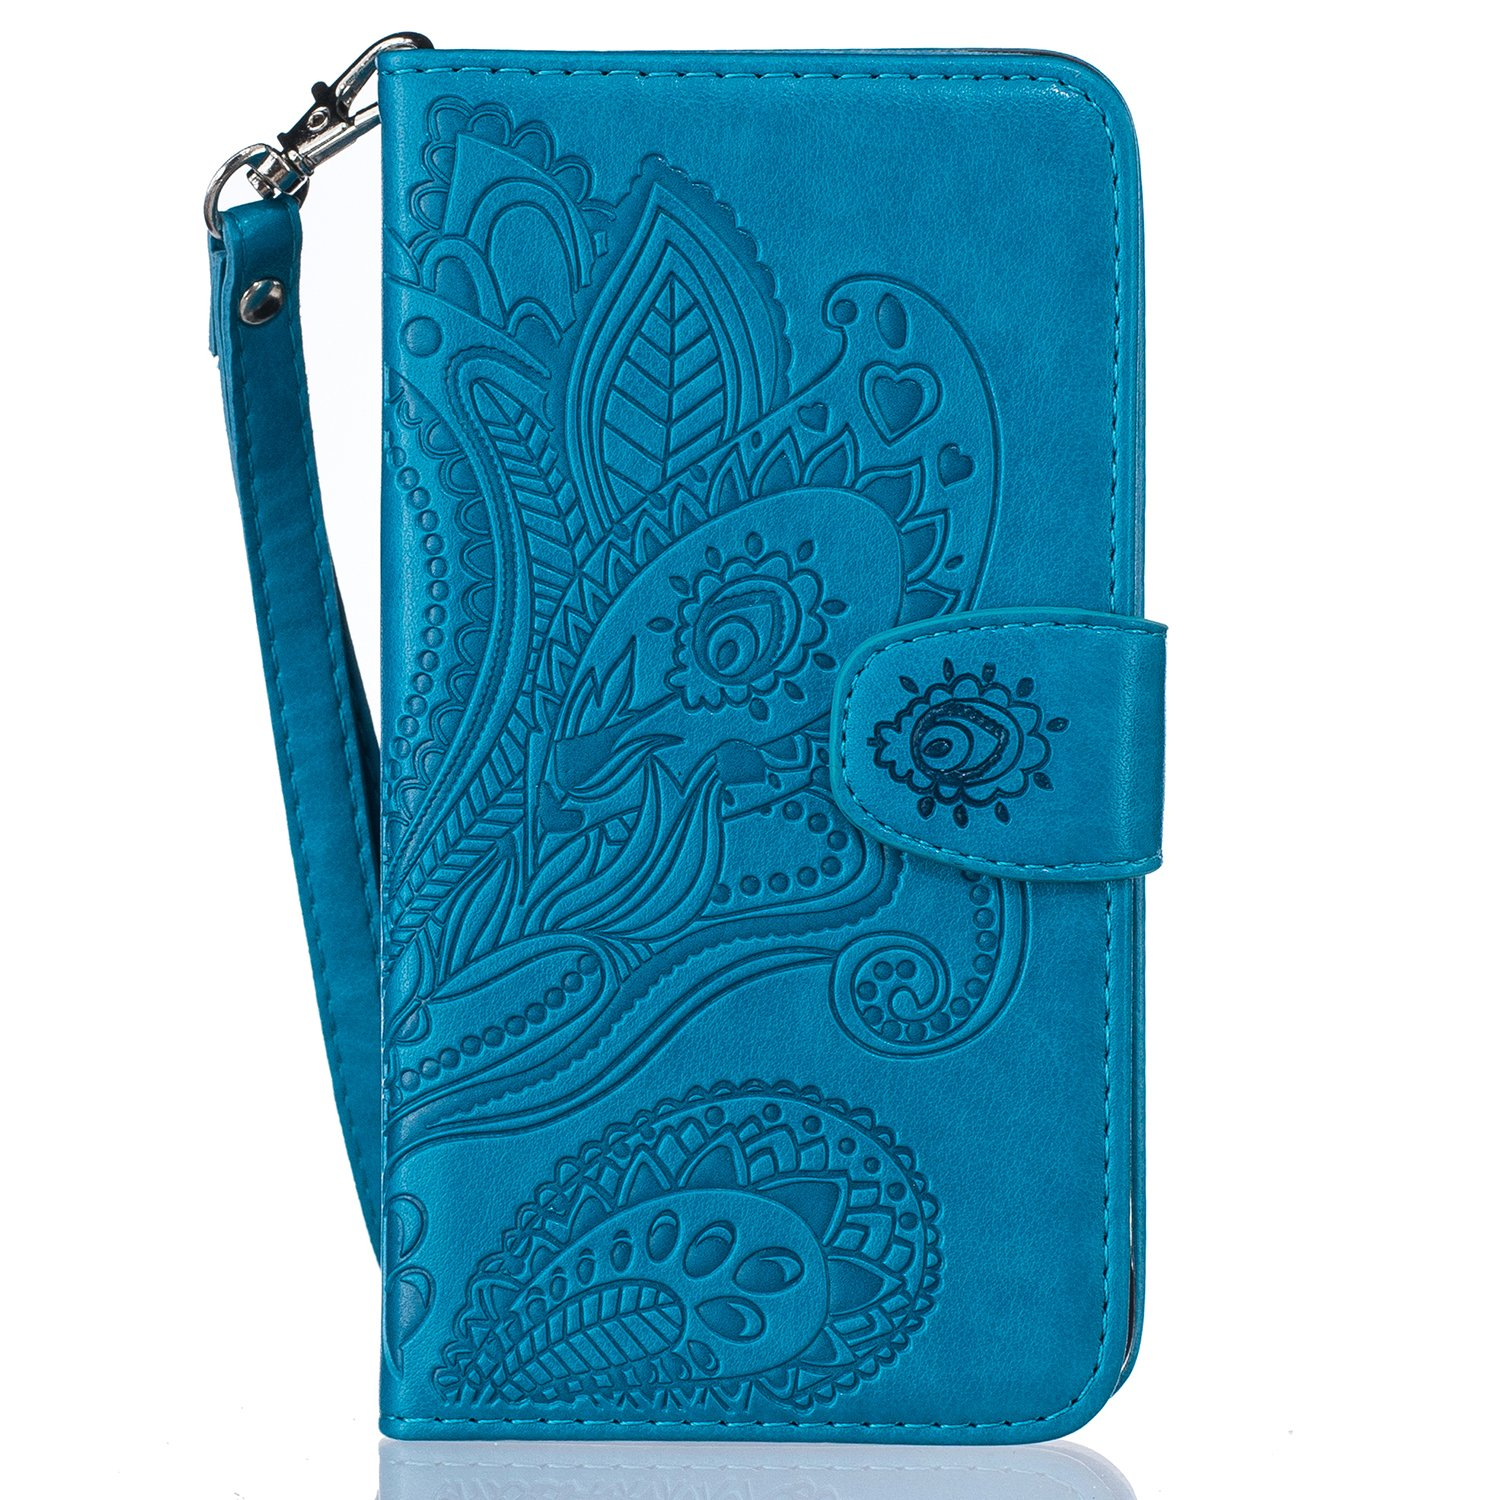 CaseHome Compatible For Samsung Galaxy Core Prime G360 Case Book Style Folio Magnetic Closure Wallet Design with Credit Card Slots Slim Fit Stand PU Leather Flip Case Cover Skin Shell-Blue